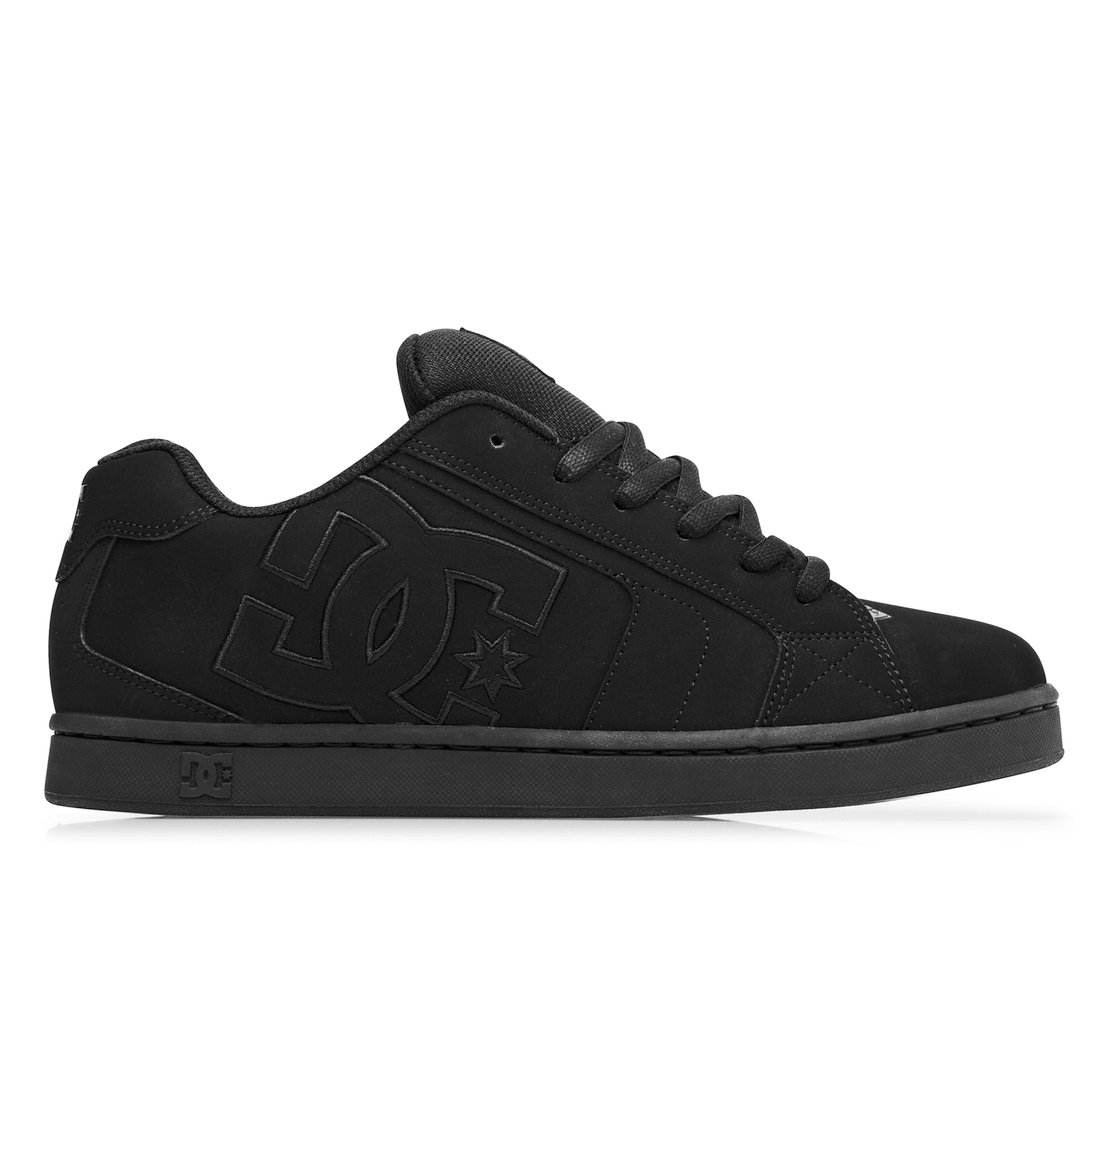 Chaussures Trase Leather Black Armor - DC Shoes